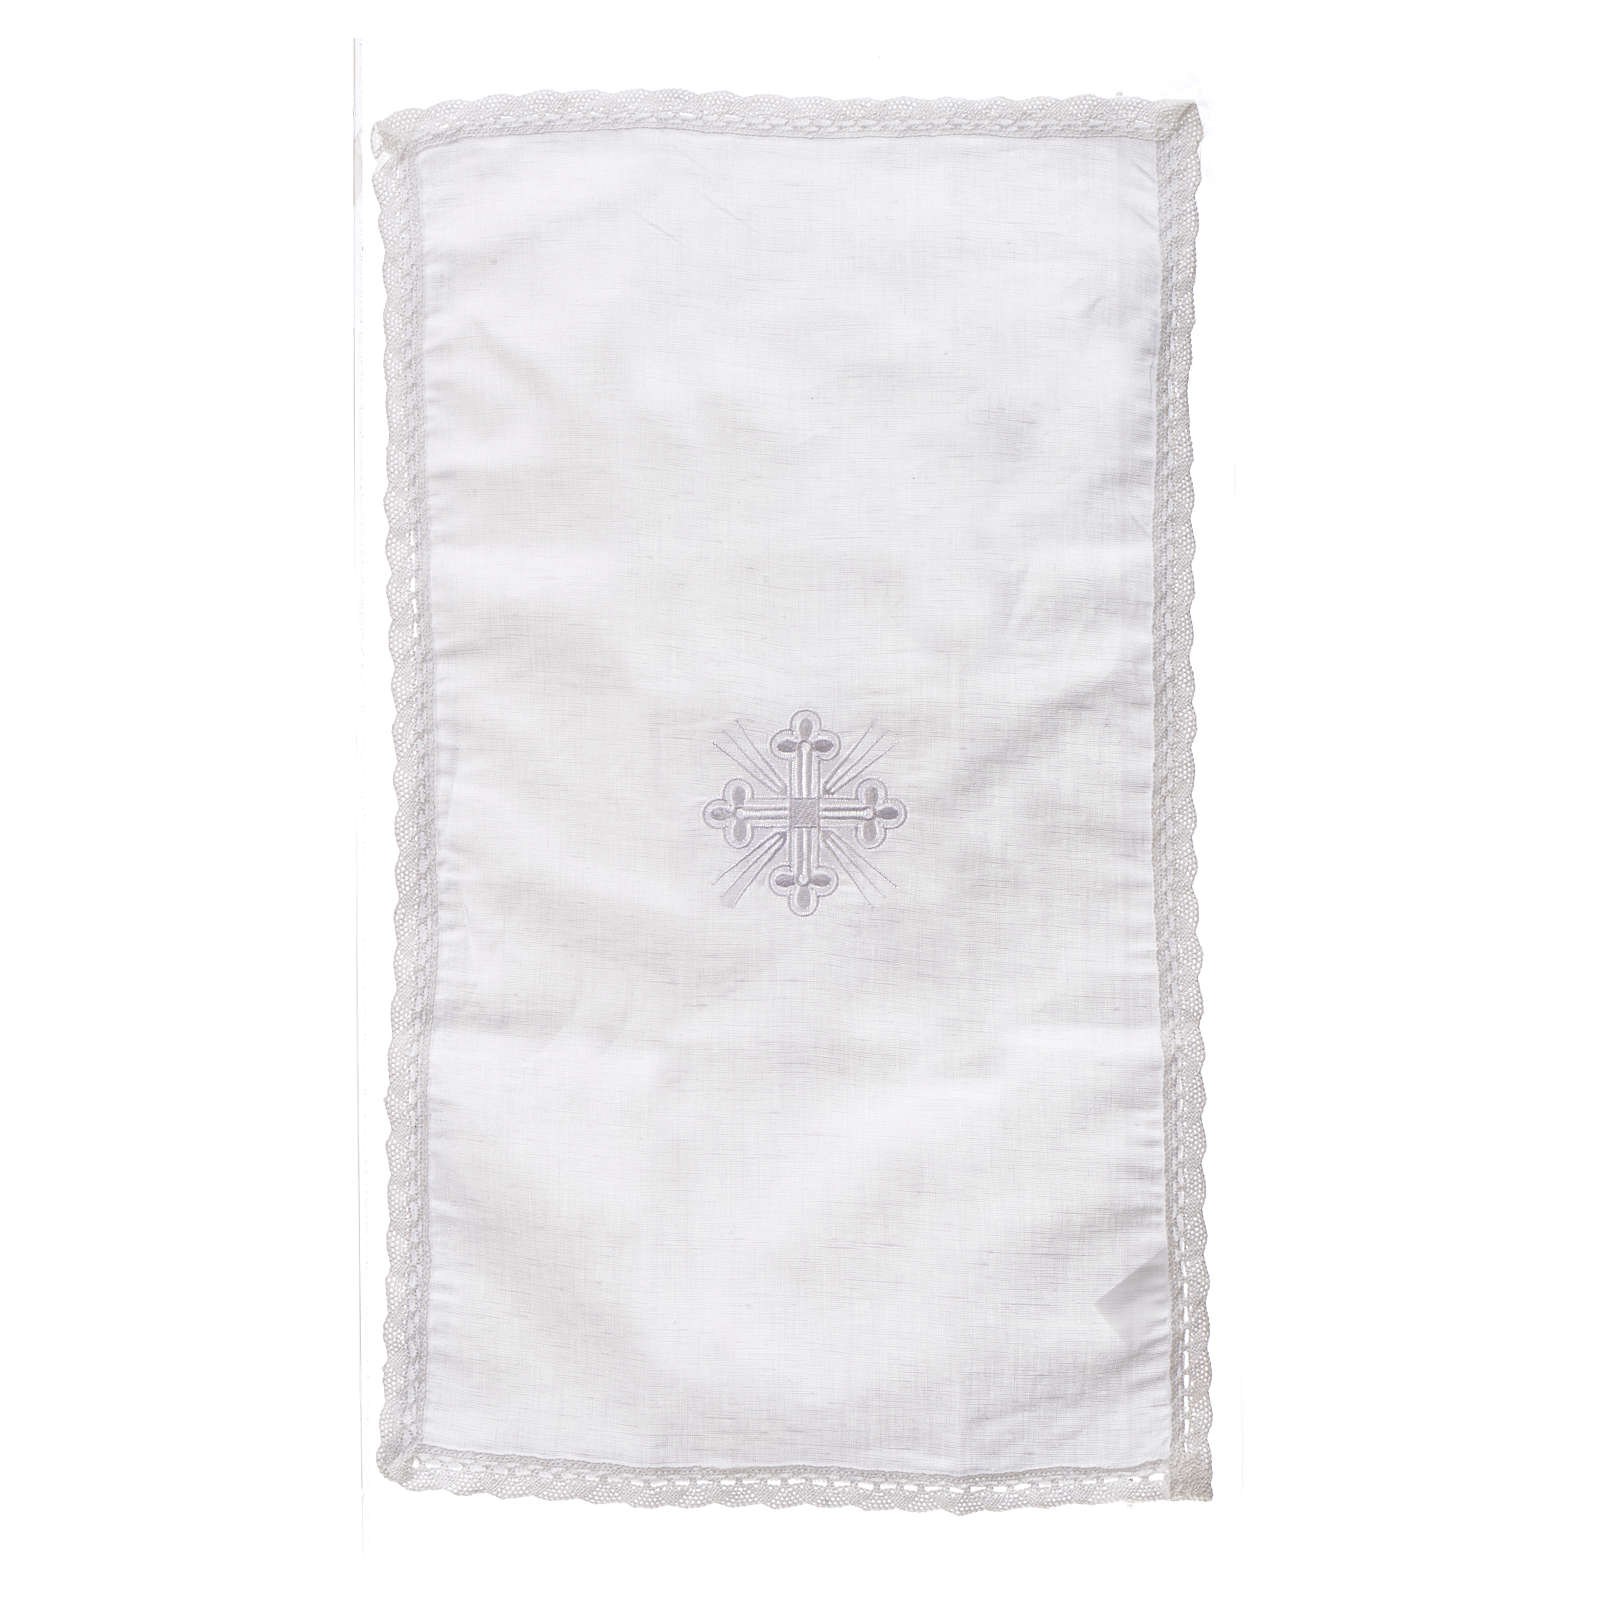 Altar linens, Purificator in linen and polyester 4